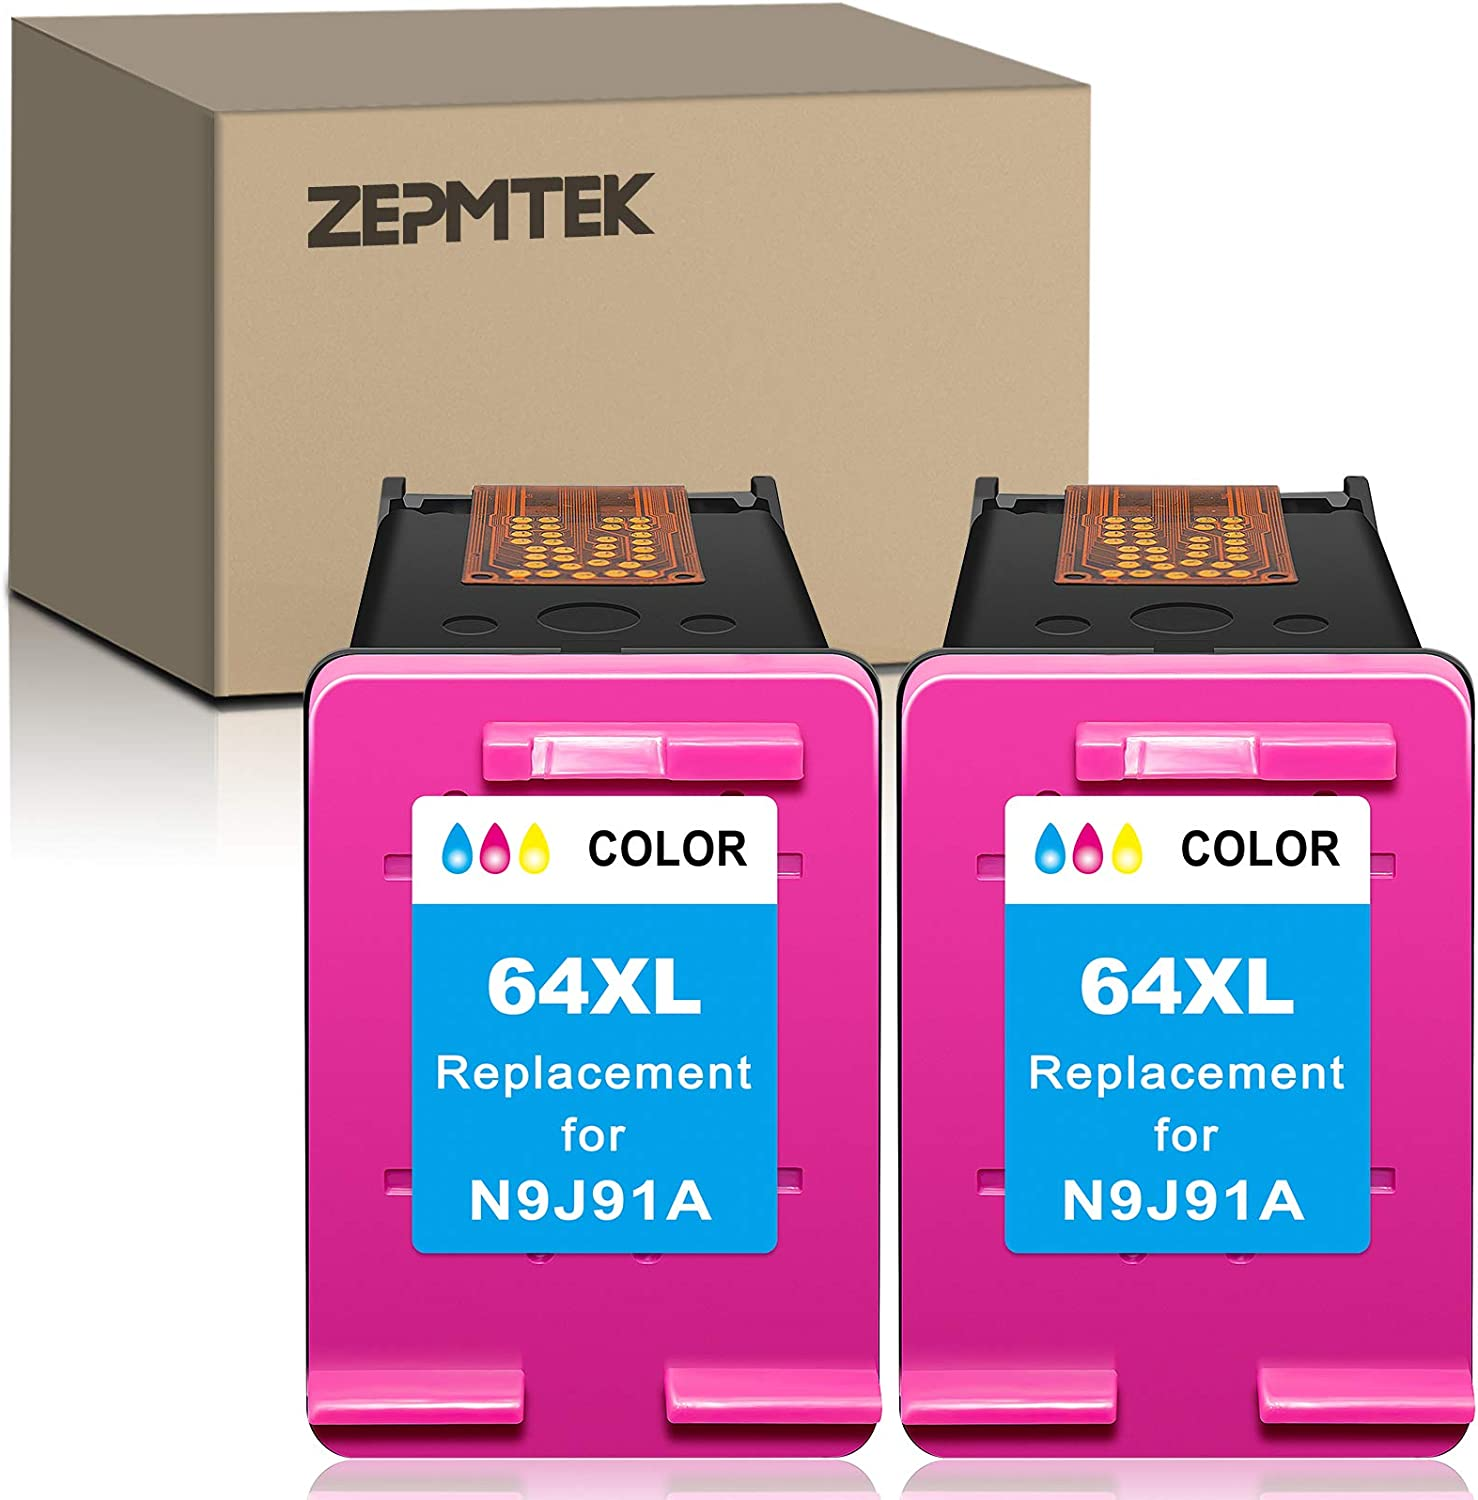 ZepmTek Remanufactured Ink Cartridge Replacement for HP 64XL 64 XL Used with Envy Photo 7800 7858 7155 7855 6255 6252 7158 7130 7164 6222 7120 7130 Tango X Smart Home Wireless Printer (2 Tri-Color)